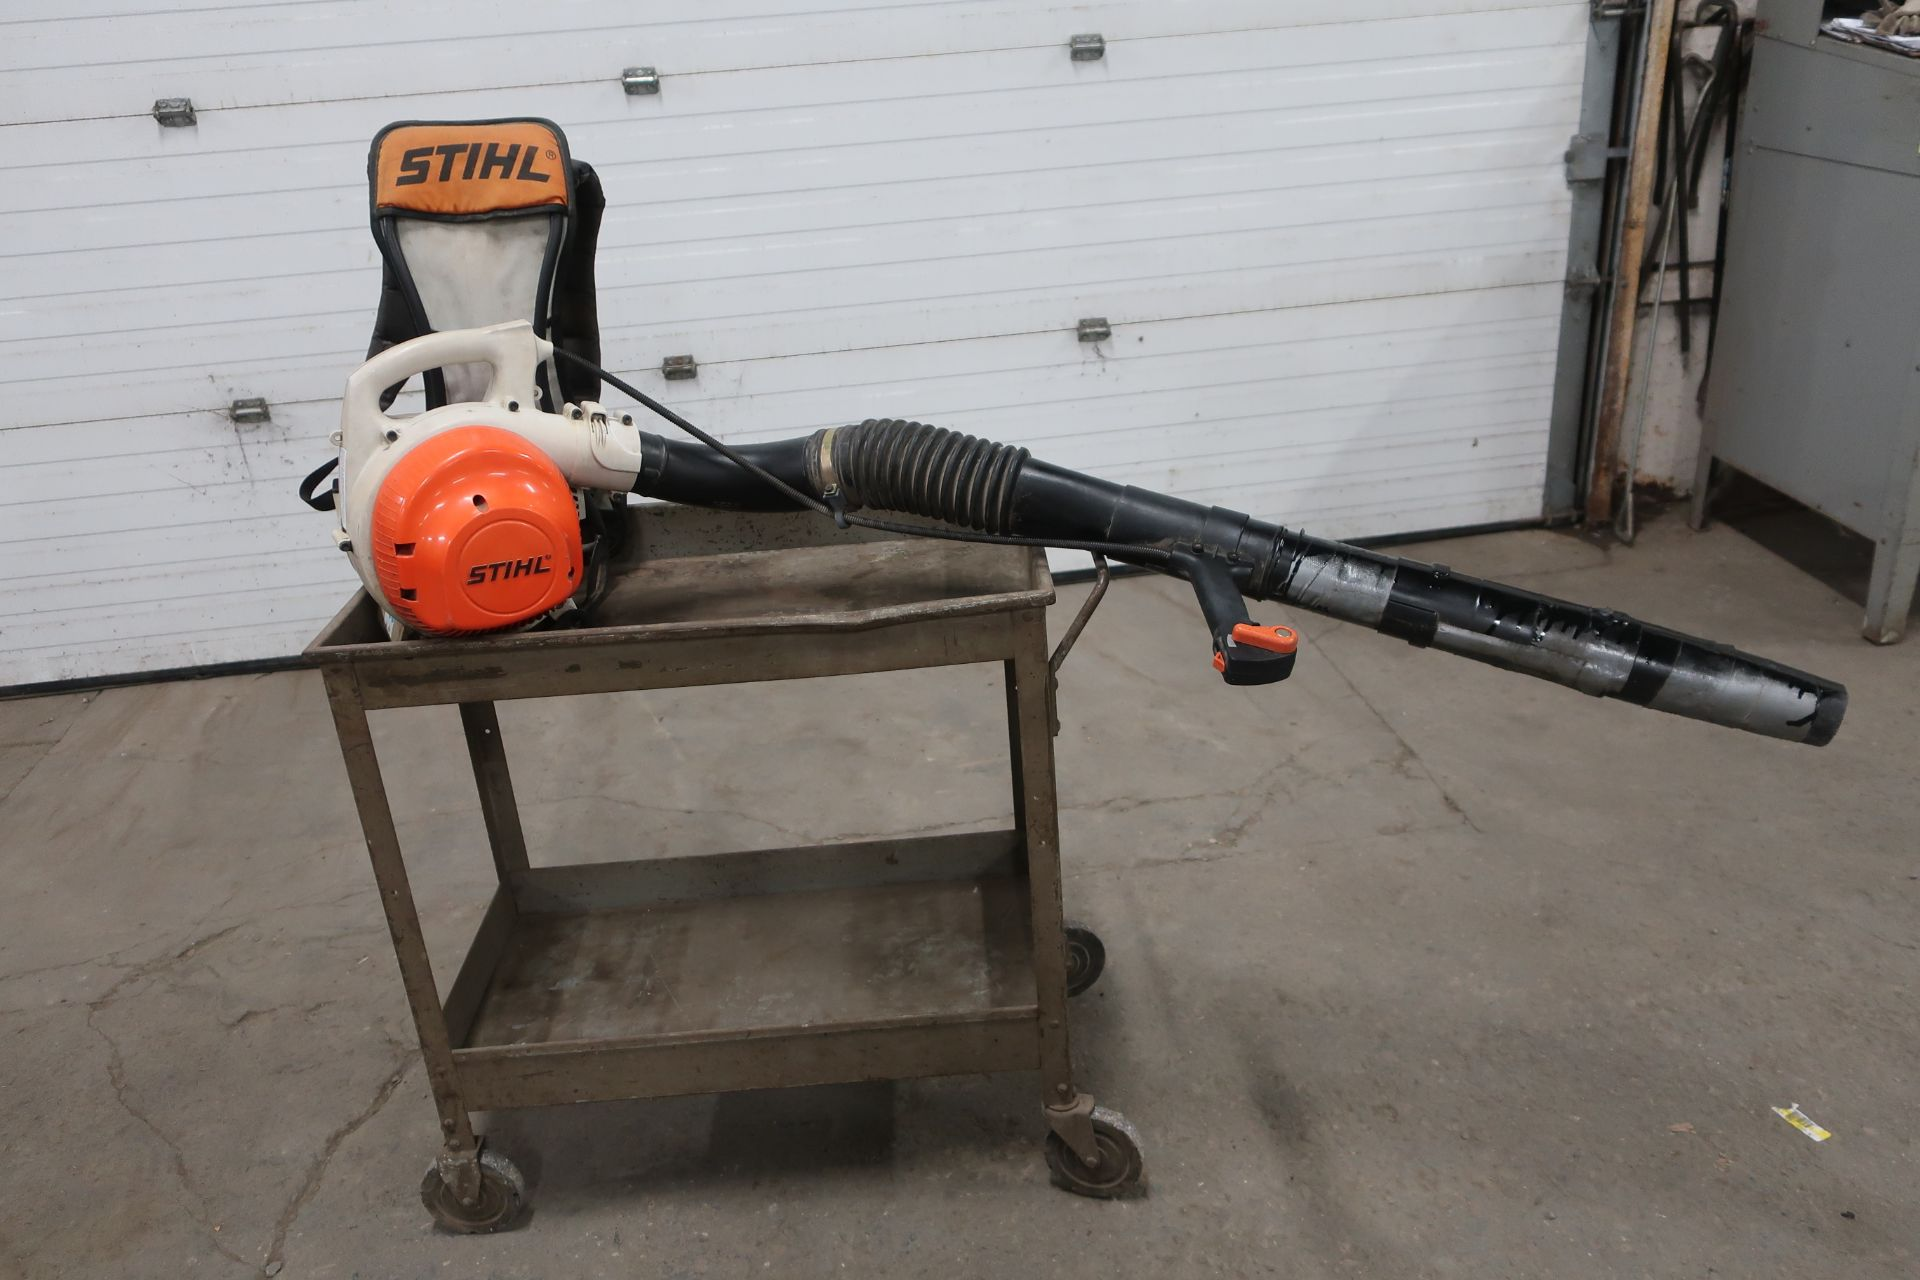 Stihl model BR-45C Leaf Blower Portable Gas Powered BACK PACK blower mint